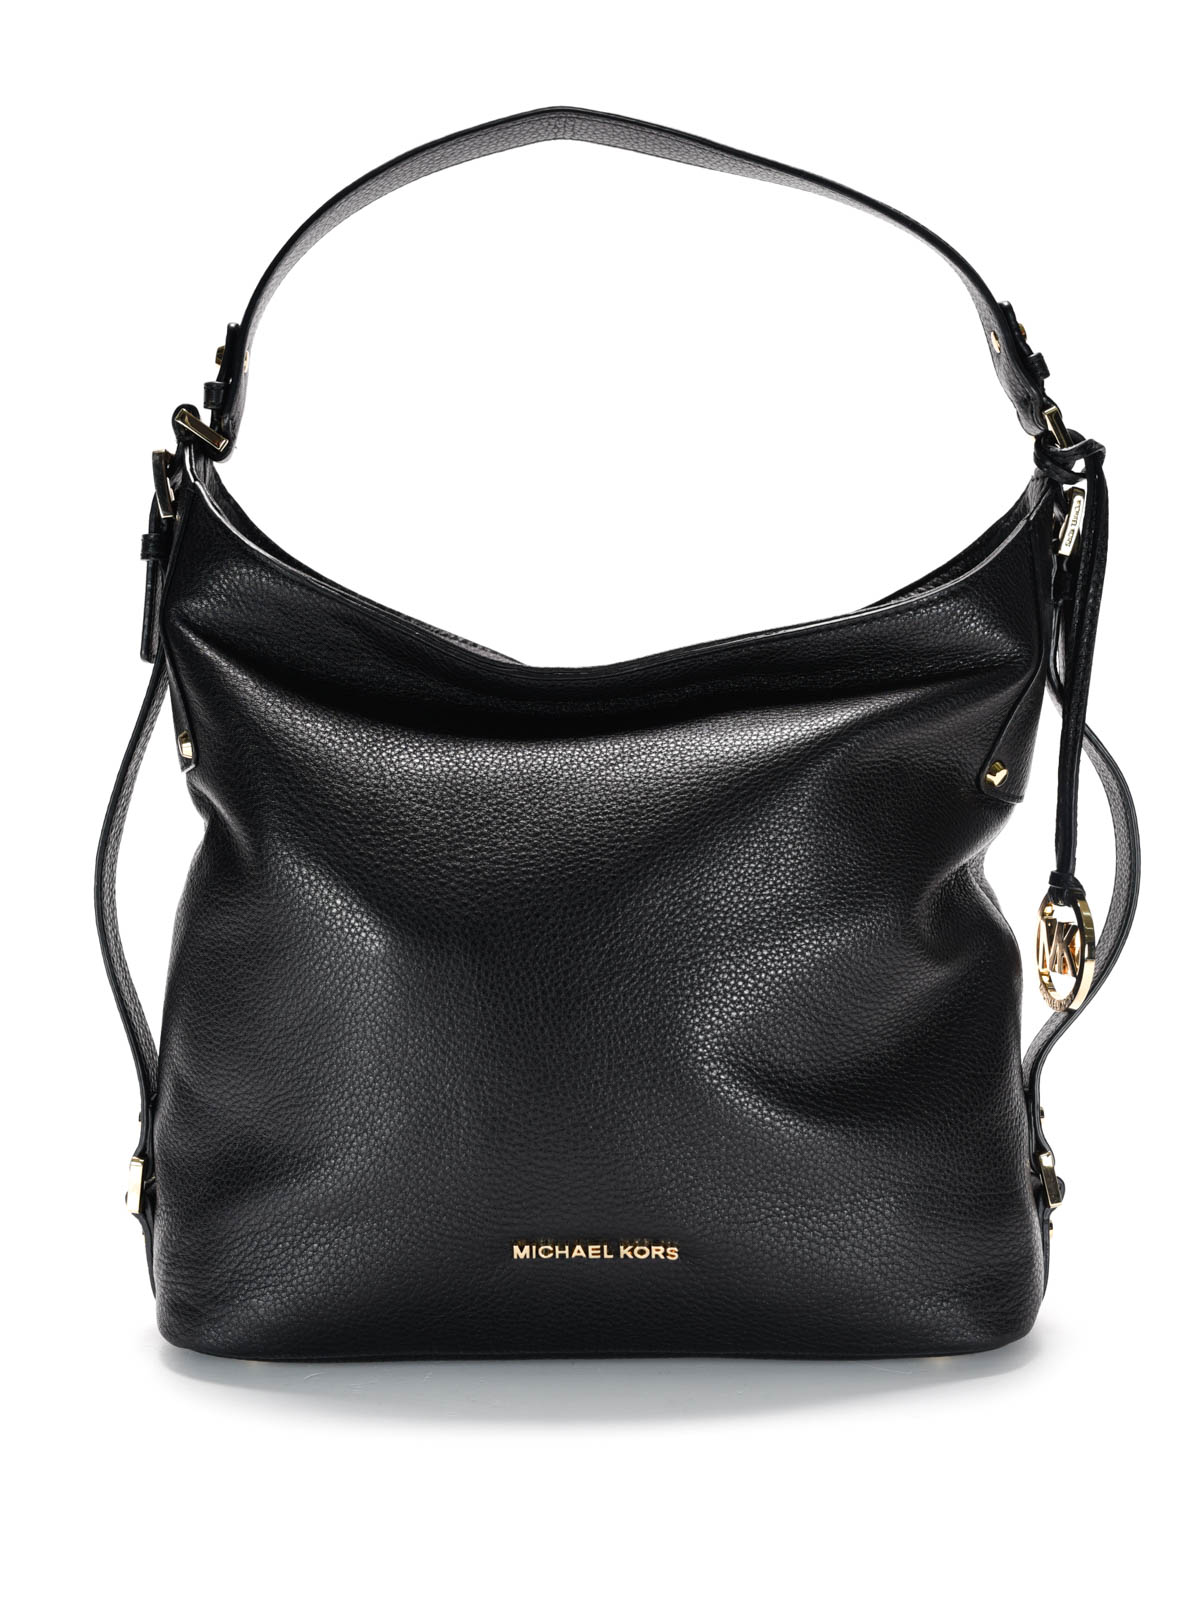 Elle shoulder bag !!!